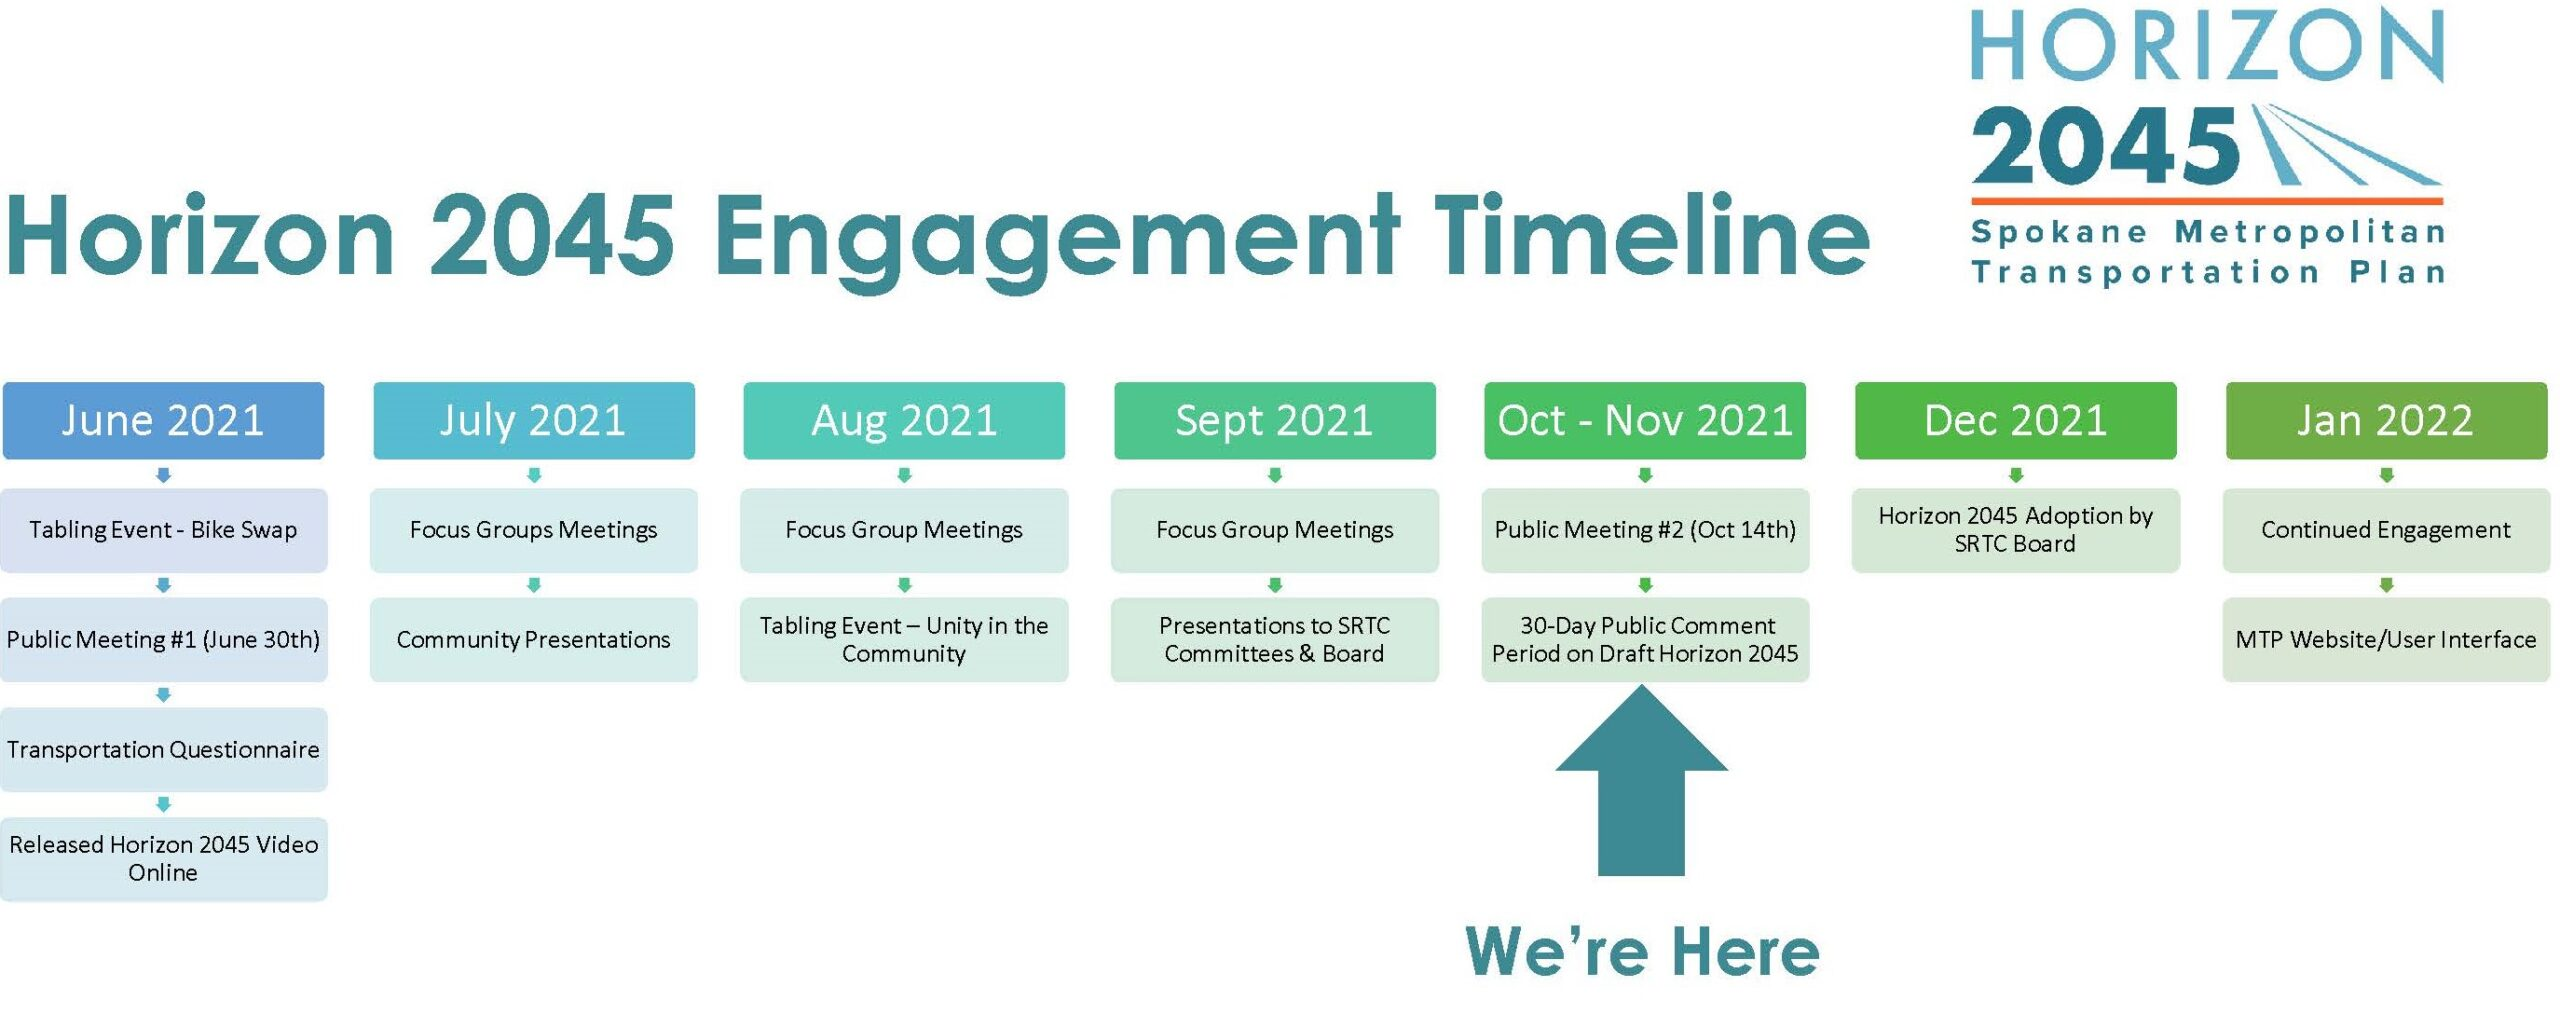 MTP Engagement Timeline from June 2021 through January 2022